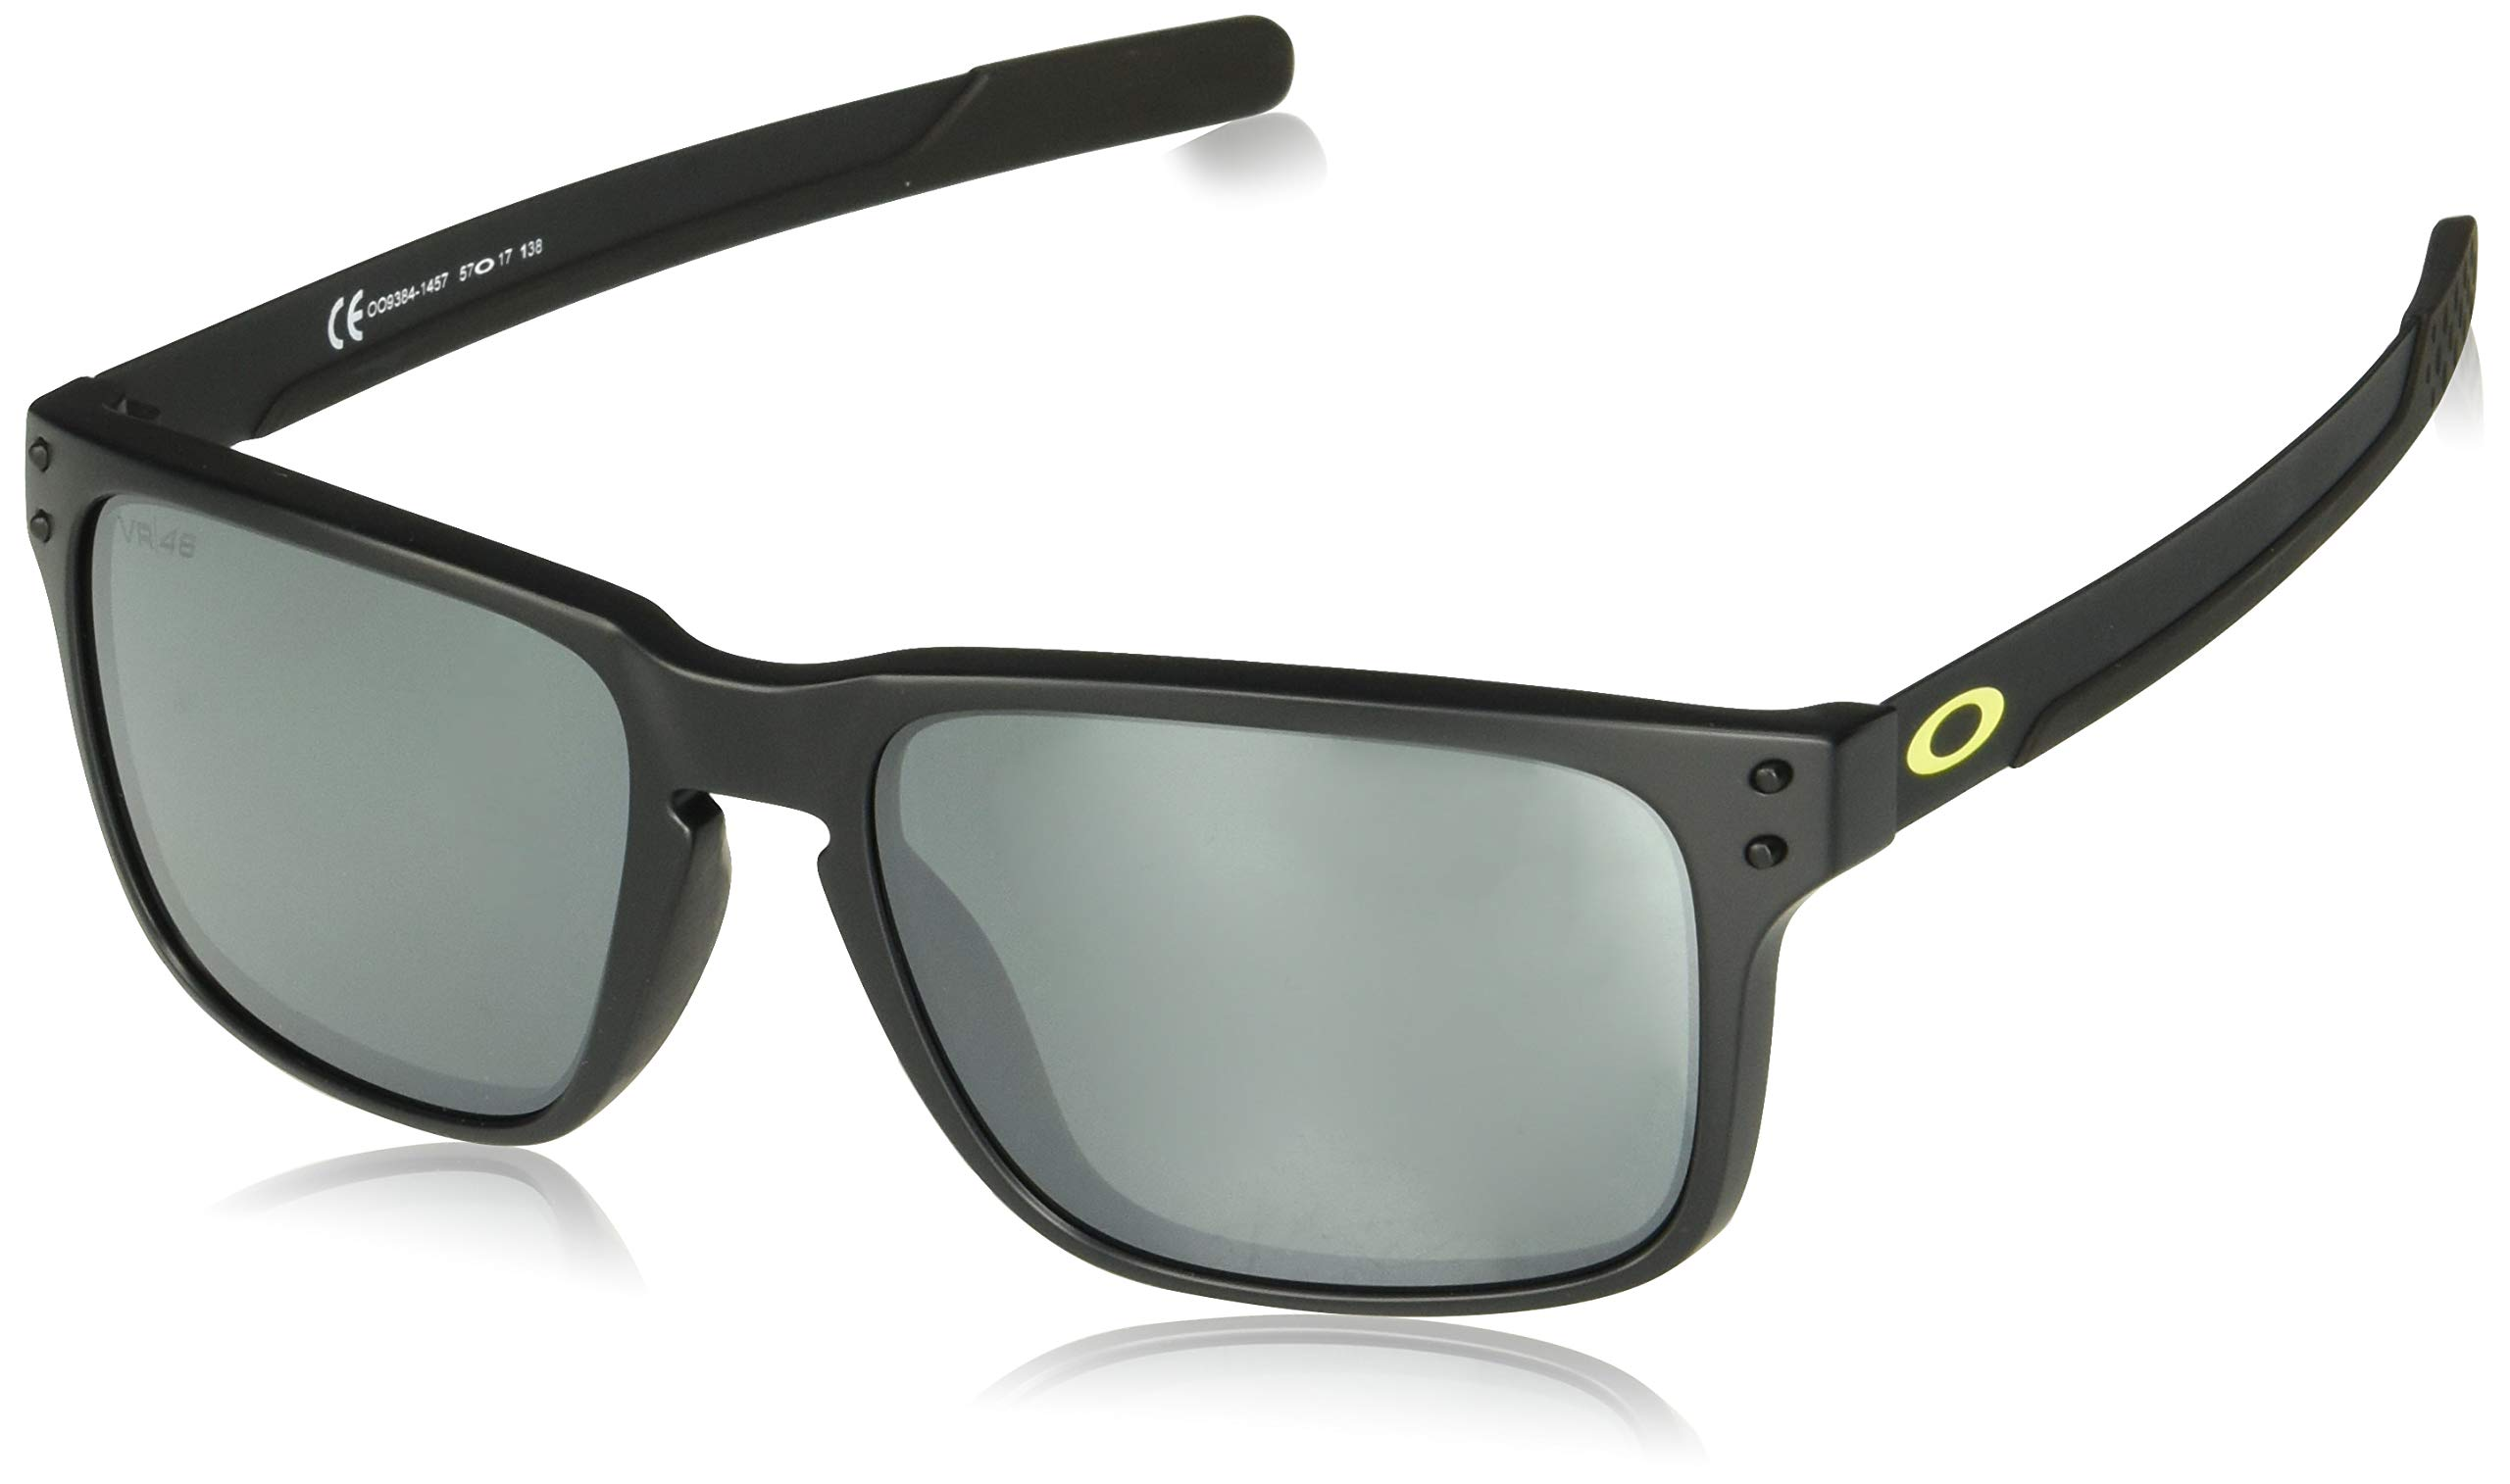 c44f1534ad979 ... Oakley Men s Holbrook Mix Polarized Iridium Rectangular Sunglasses